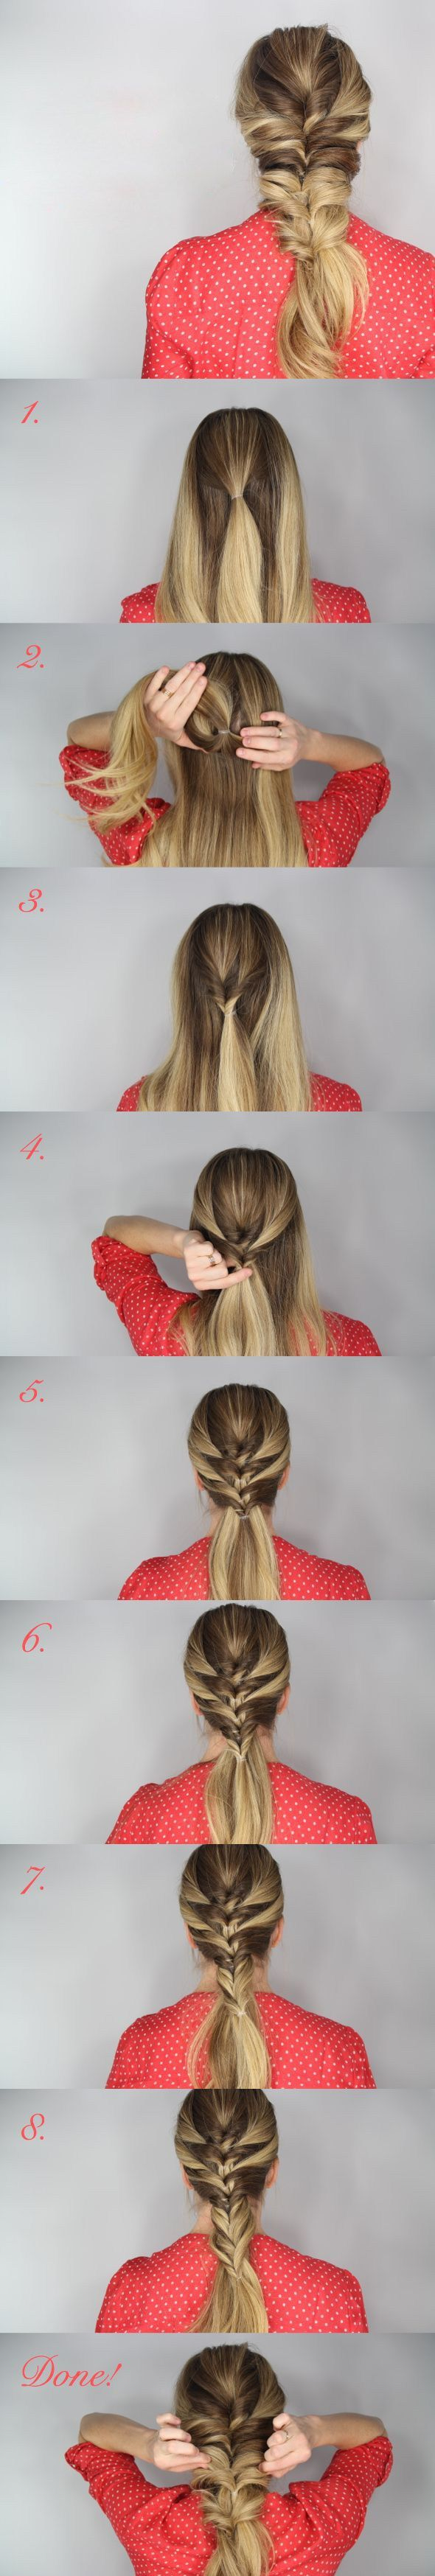 shortcut to fishtail braid